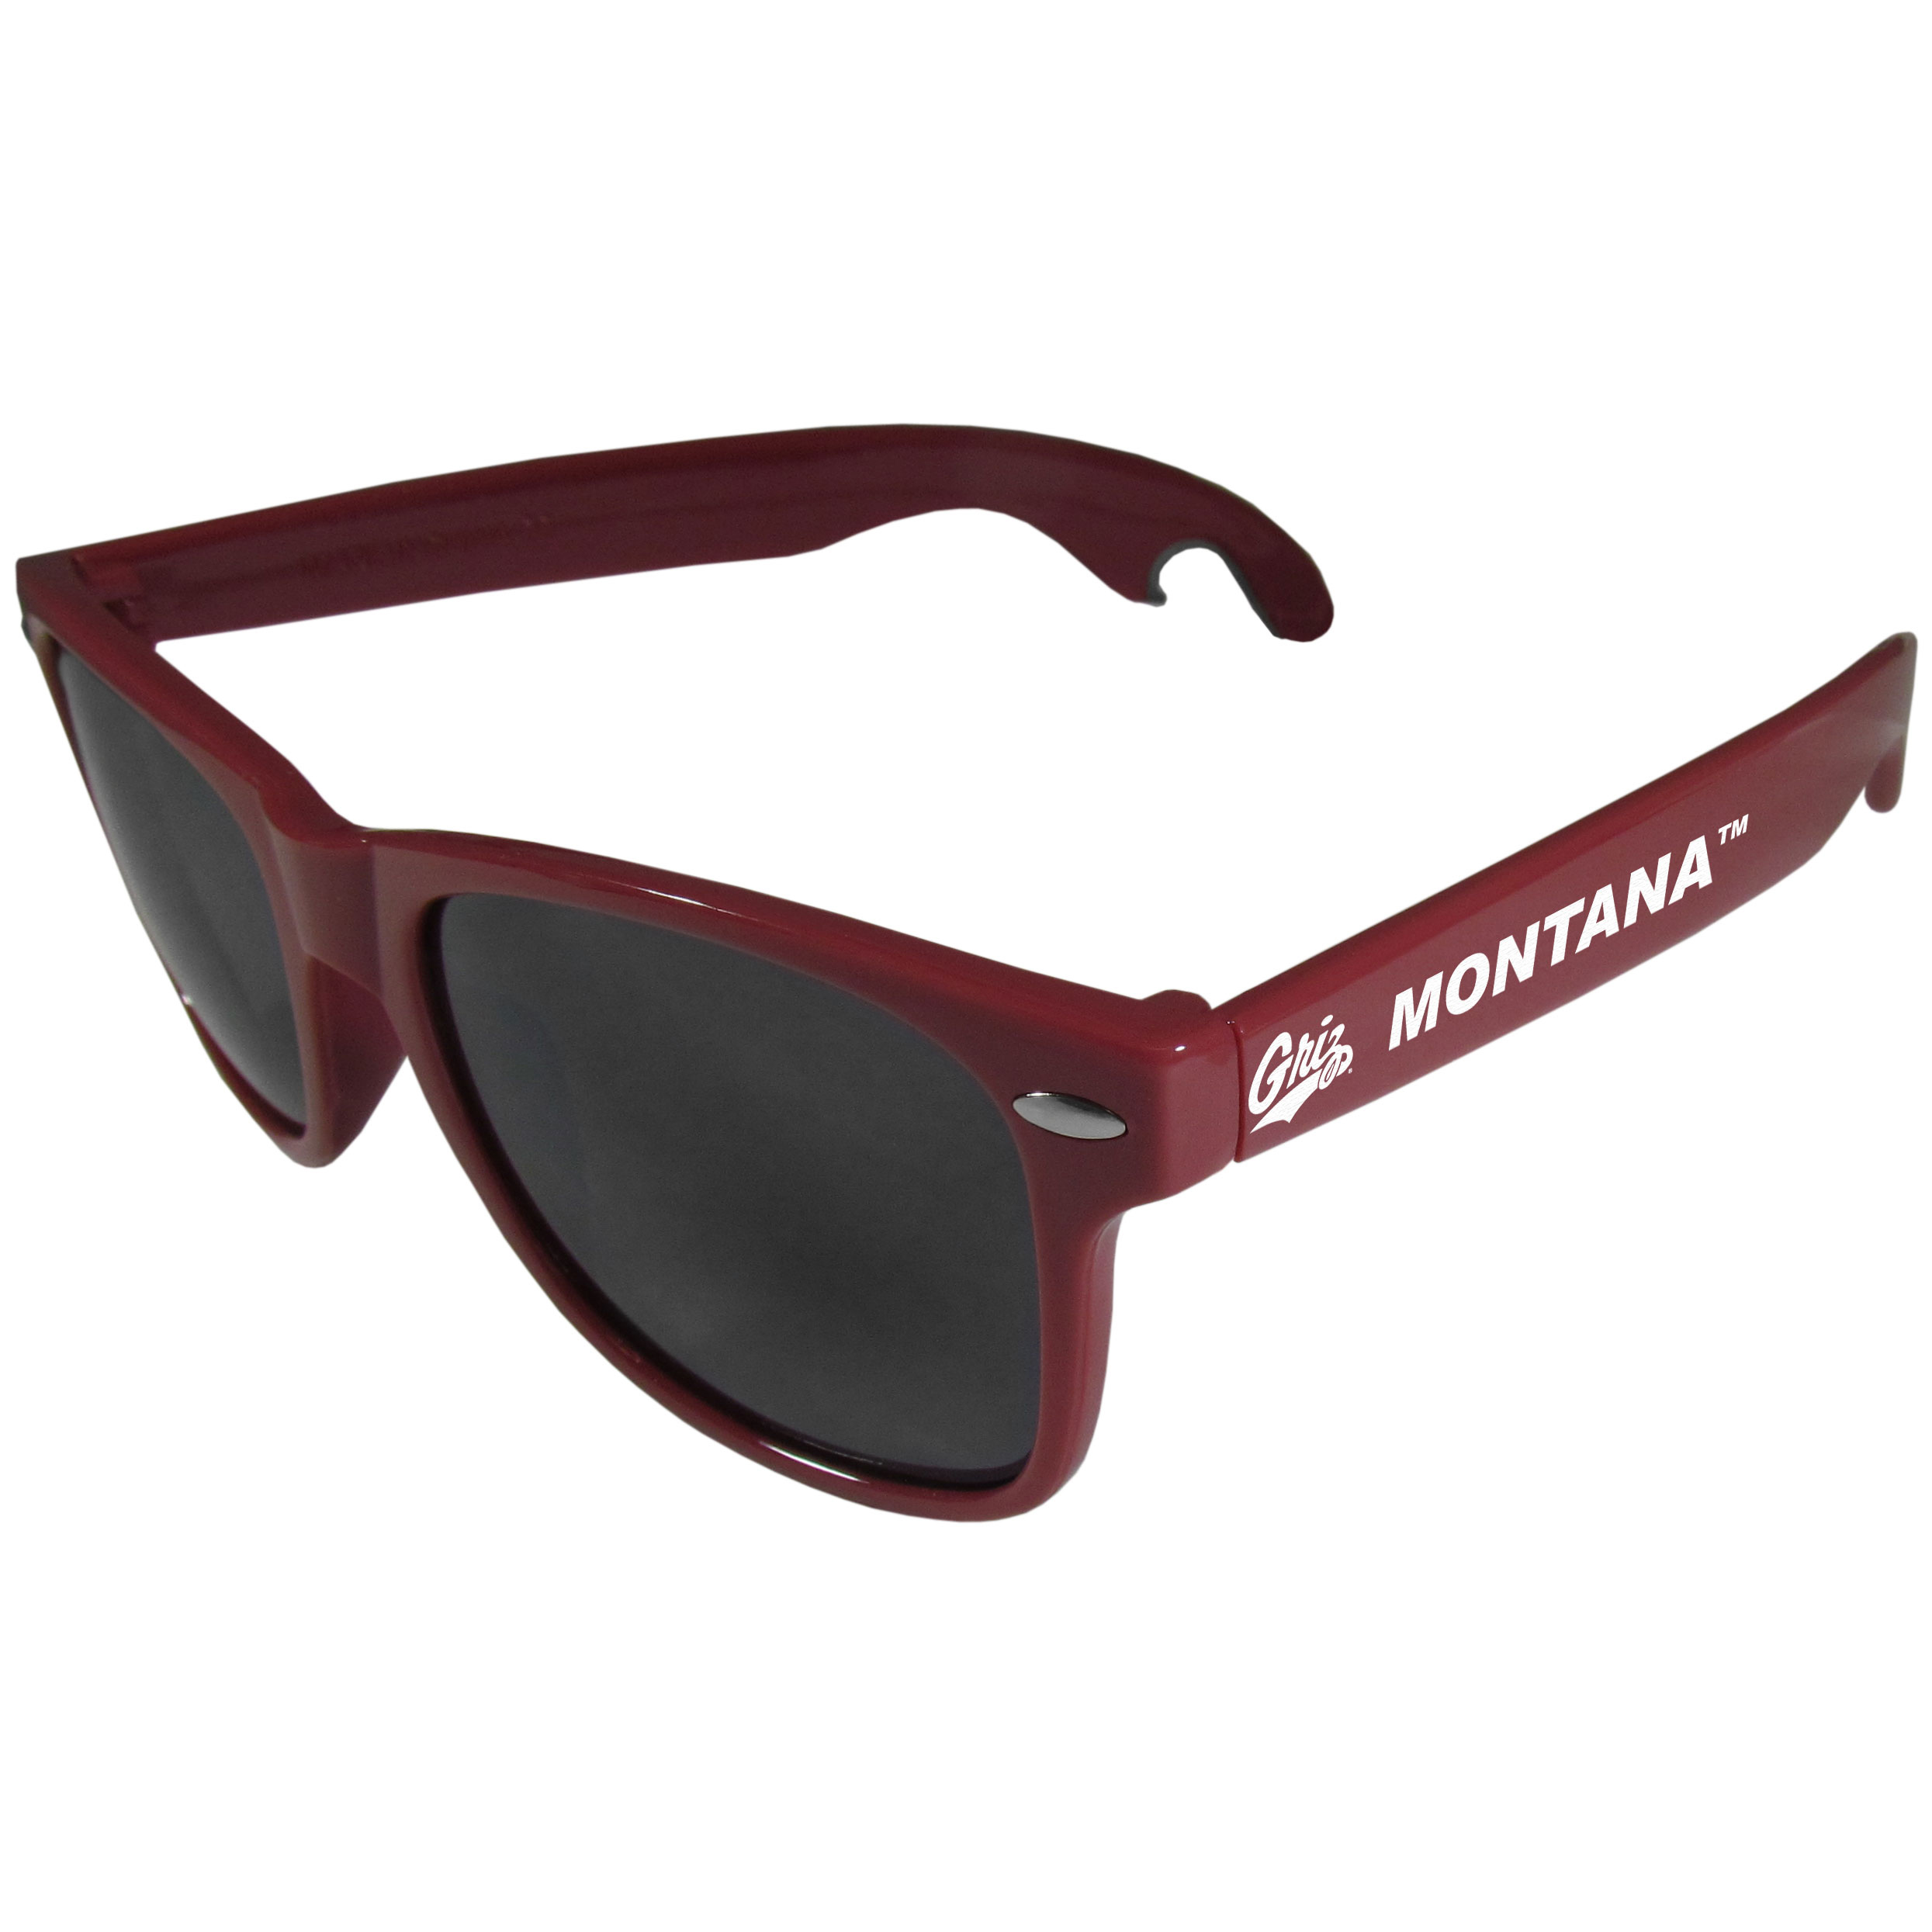 Montana Grizzlies Beachfarer Bottle Opener Sunglasses, Maroon - Seriously, these sunglasses open bottles! Keep the party going with these amazing Montana Grizzlies bottle opener sunglasses. The stylish retro frames feature team designs on the arms and functional bottle openers on the end of the arms. Whether you are at the beach or having a backyard BBQ on game day, these shades will keep your eyes protected with 100% UVA/UVB protection and keep you hydrated with the handy bottle opener arms.